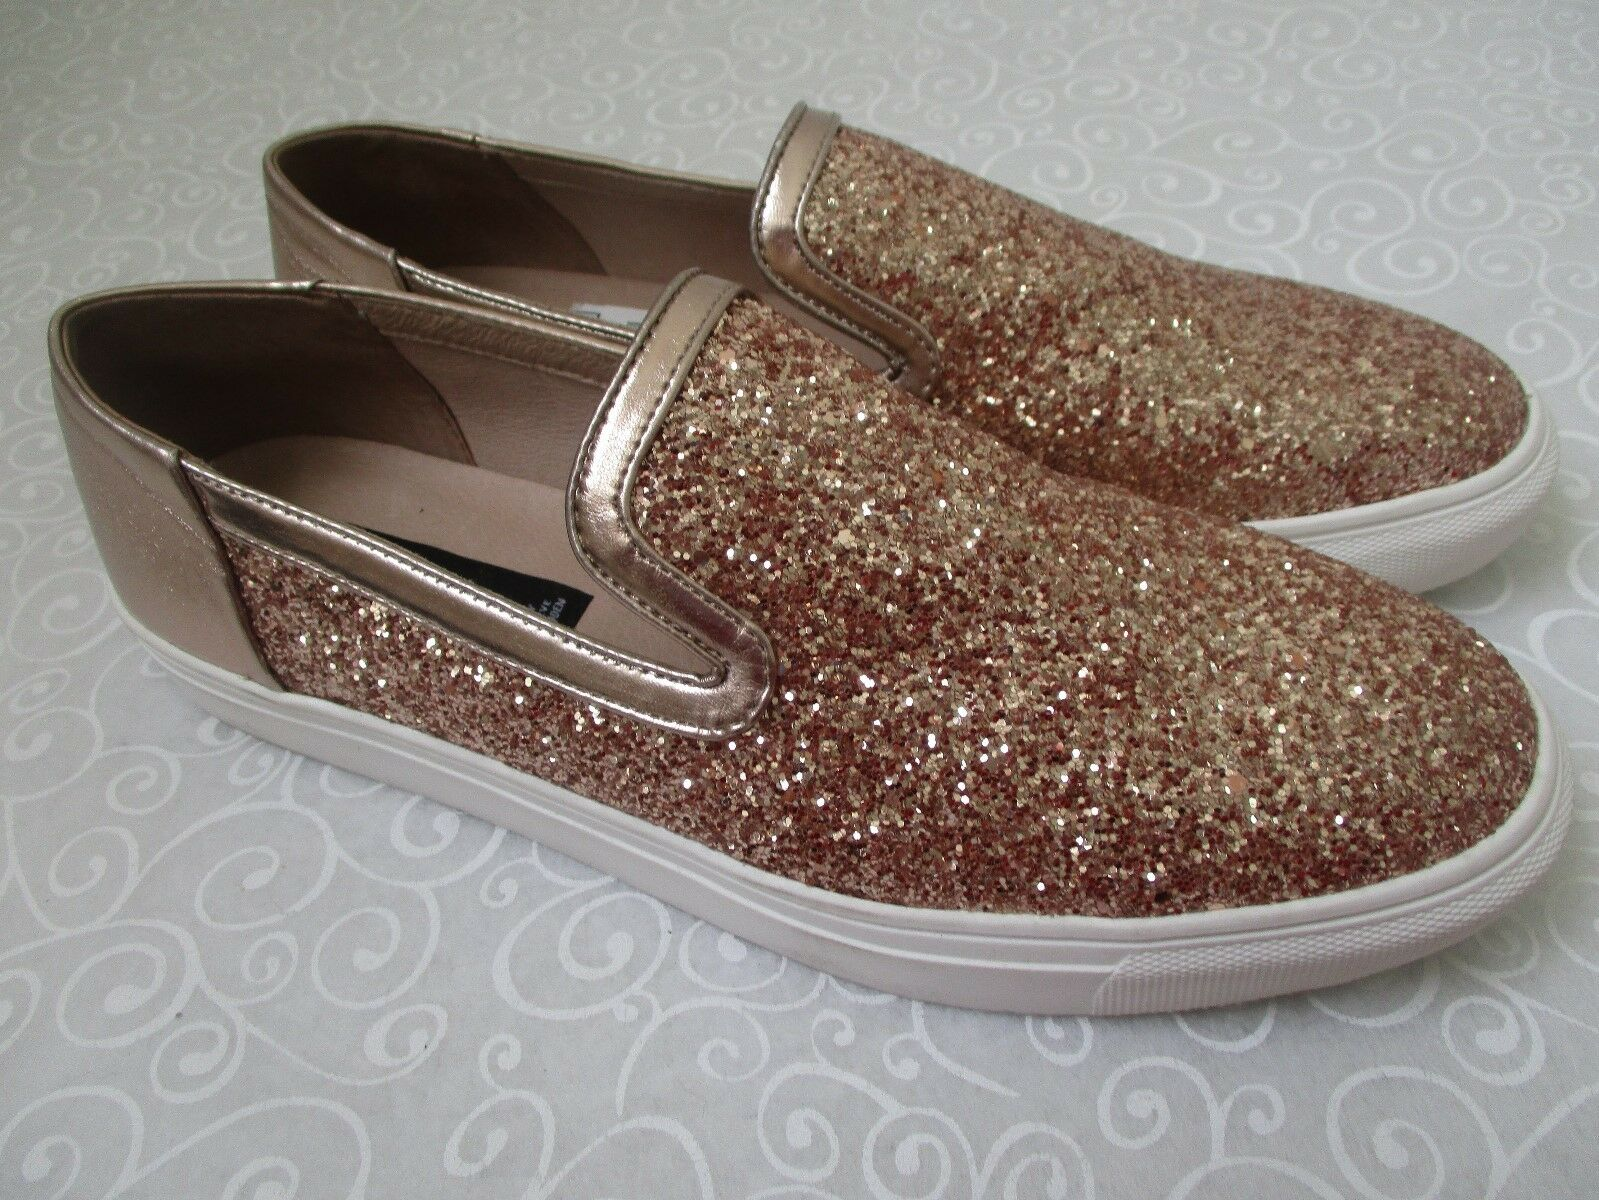 STEVEN BY STEVE MADDEN KENNER pink gold gold gold GLITTER FLATS SHOES SIZE 10 M - NEW ce2abf